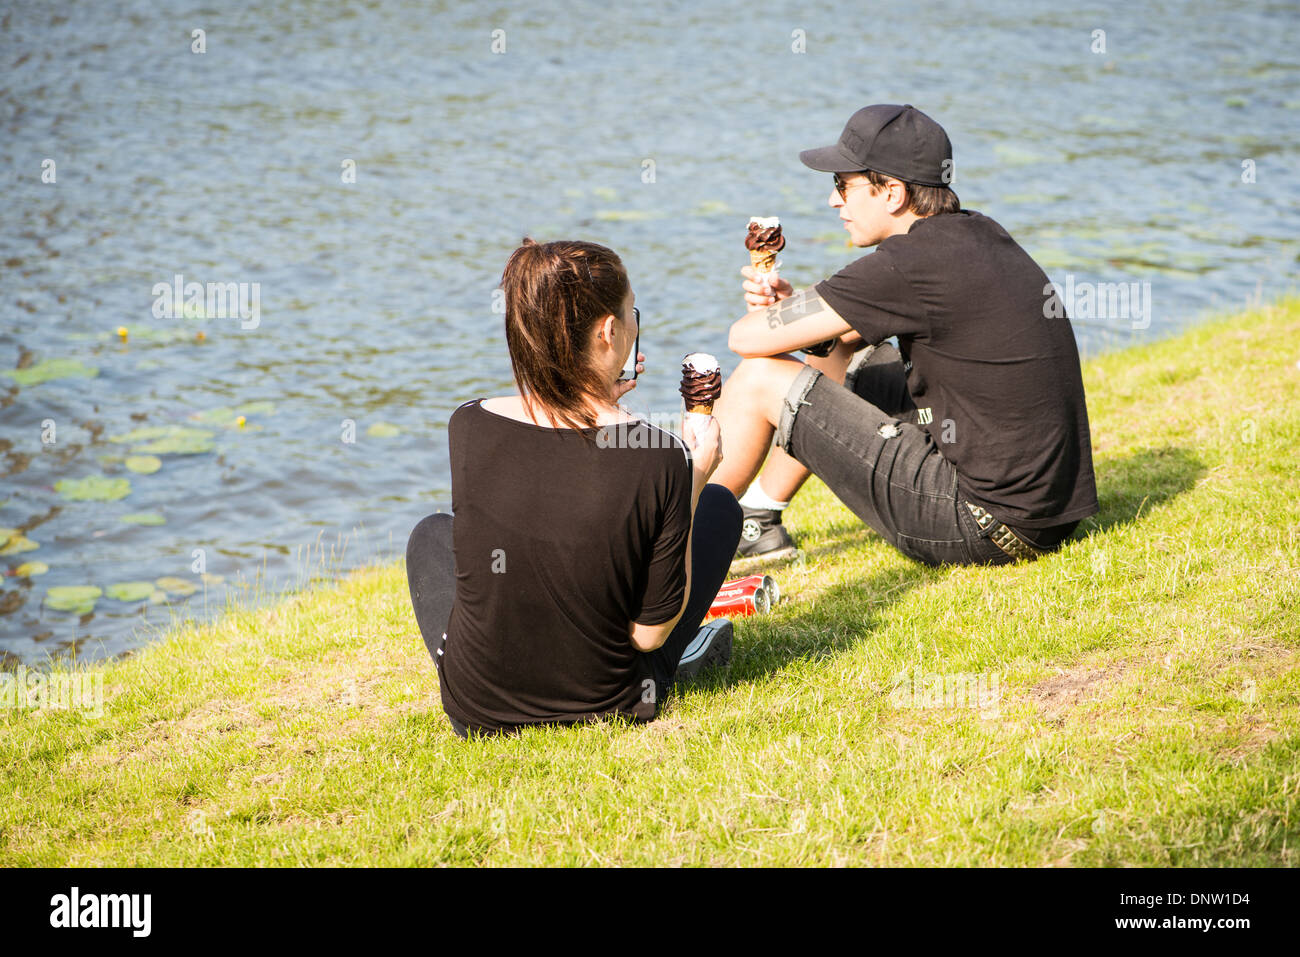 Young couple in black eating chocolate ice creams by the river. - Stock Image